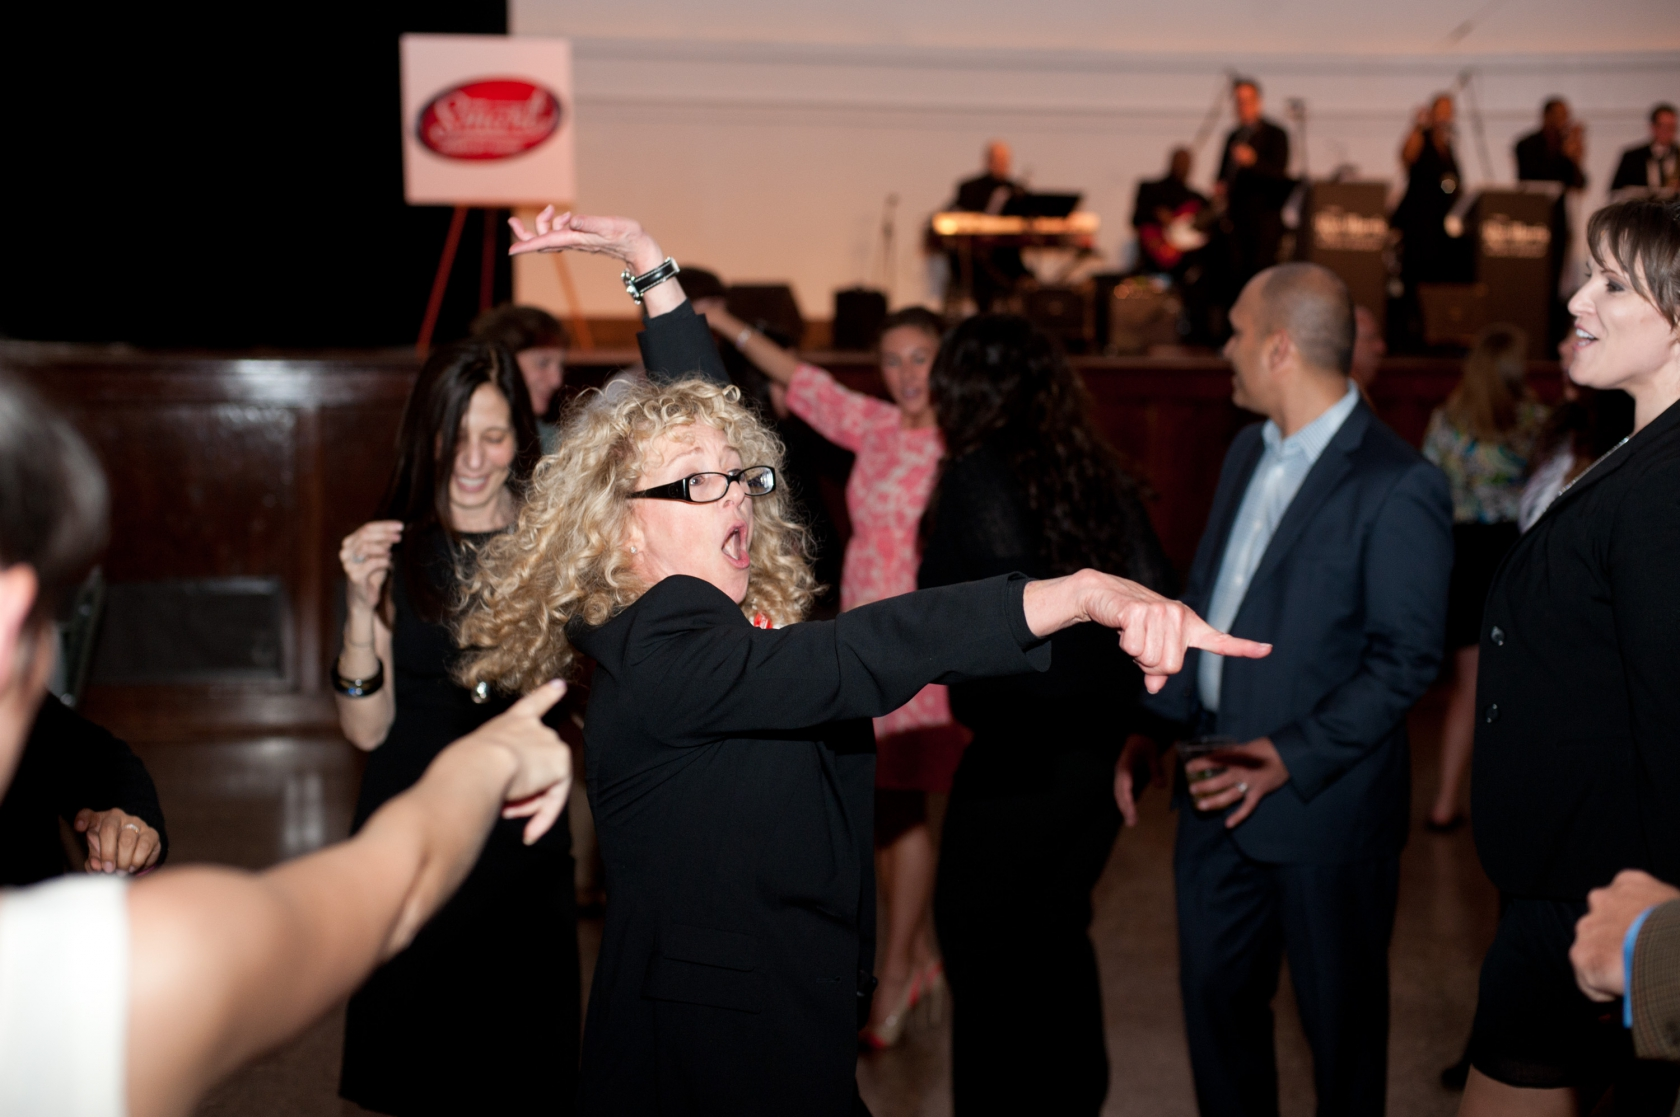 Party Photography By Fab Photo Chicago Navy Pier Grand Ballroom